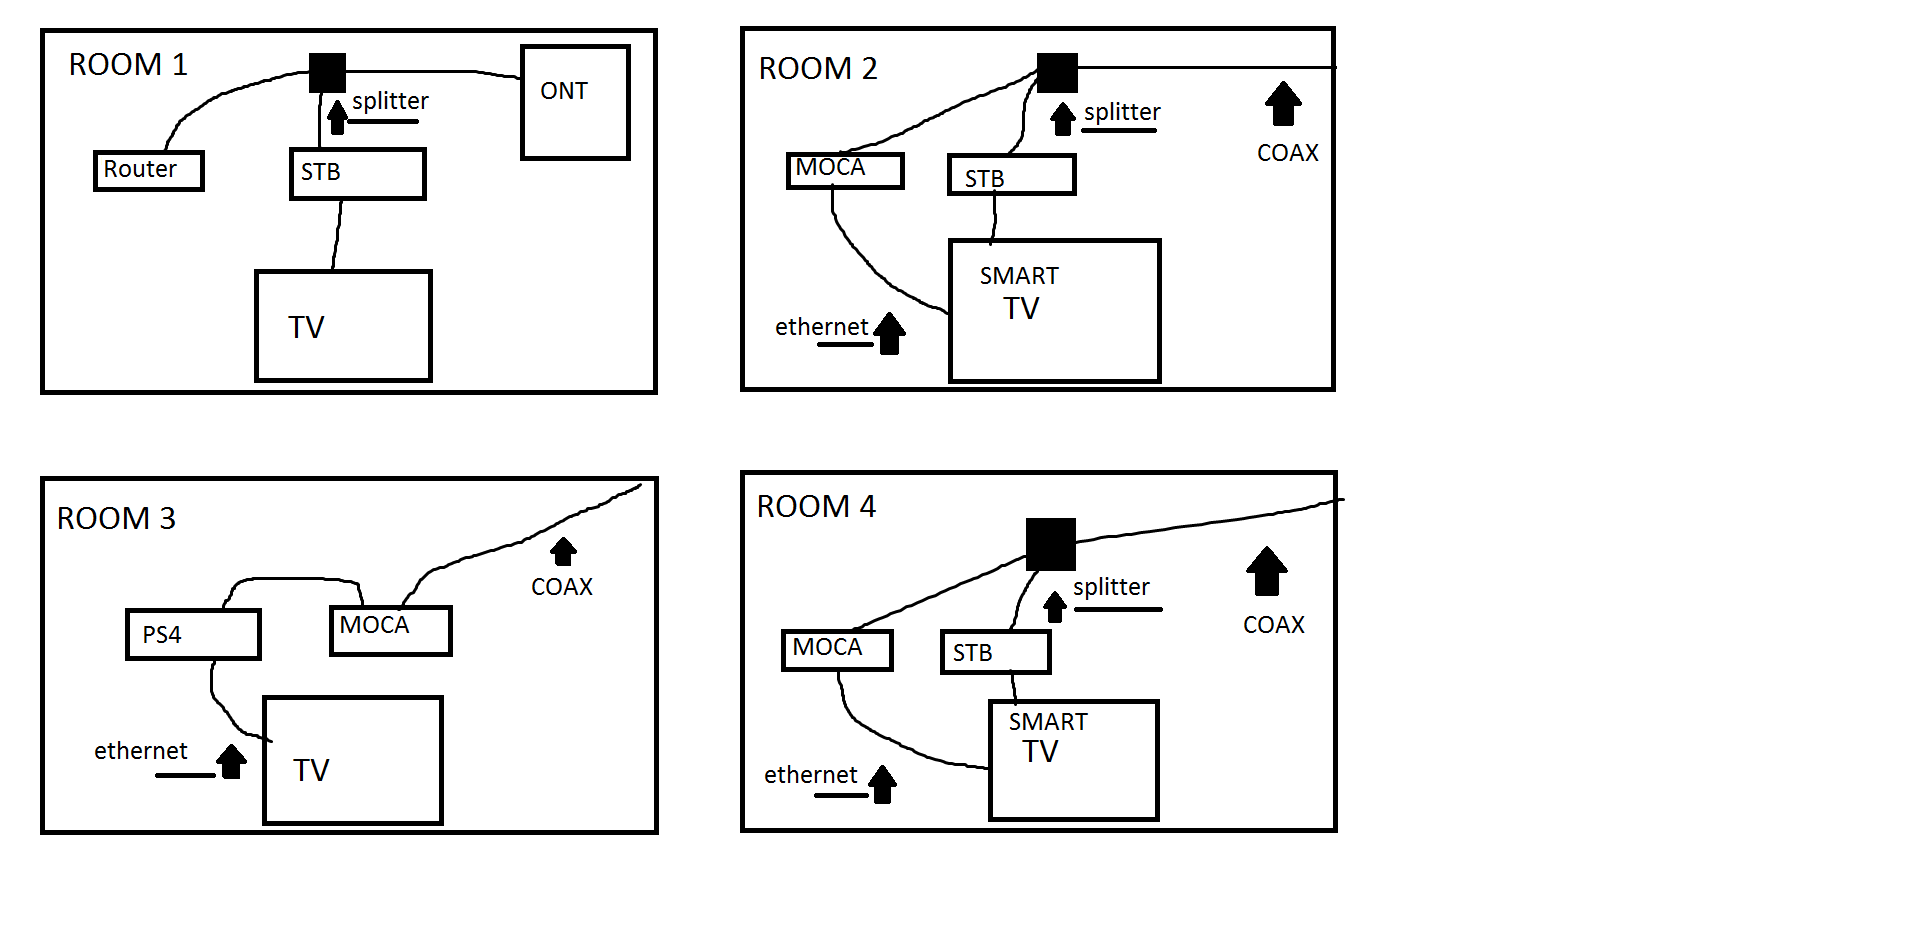 dish dish work wiring diagrams on dish vs directv dish network receiver setup  [ 1906 x 927 Pixel ]